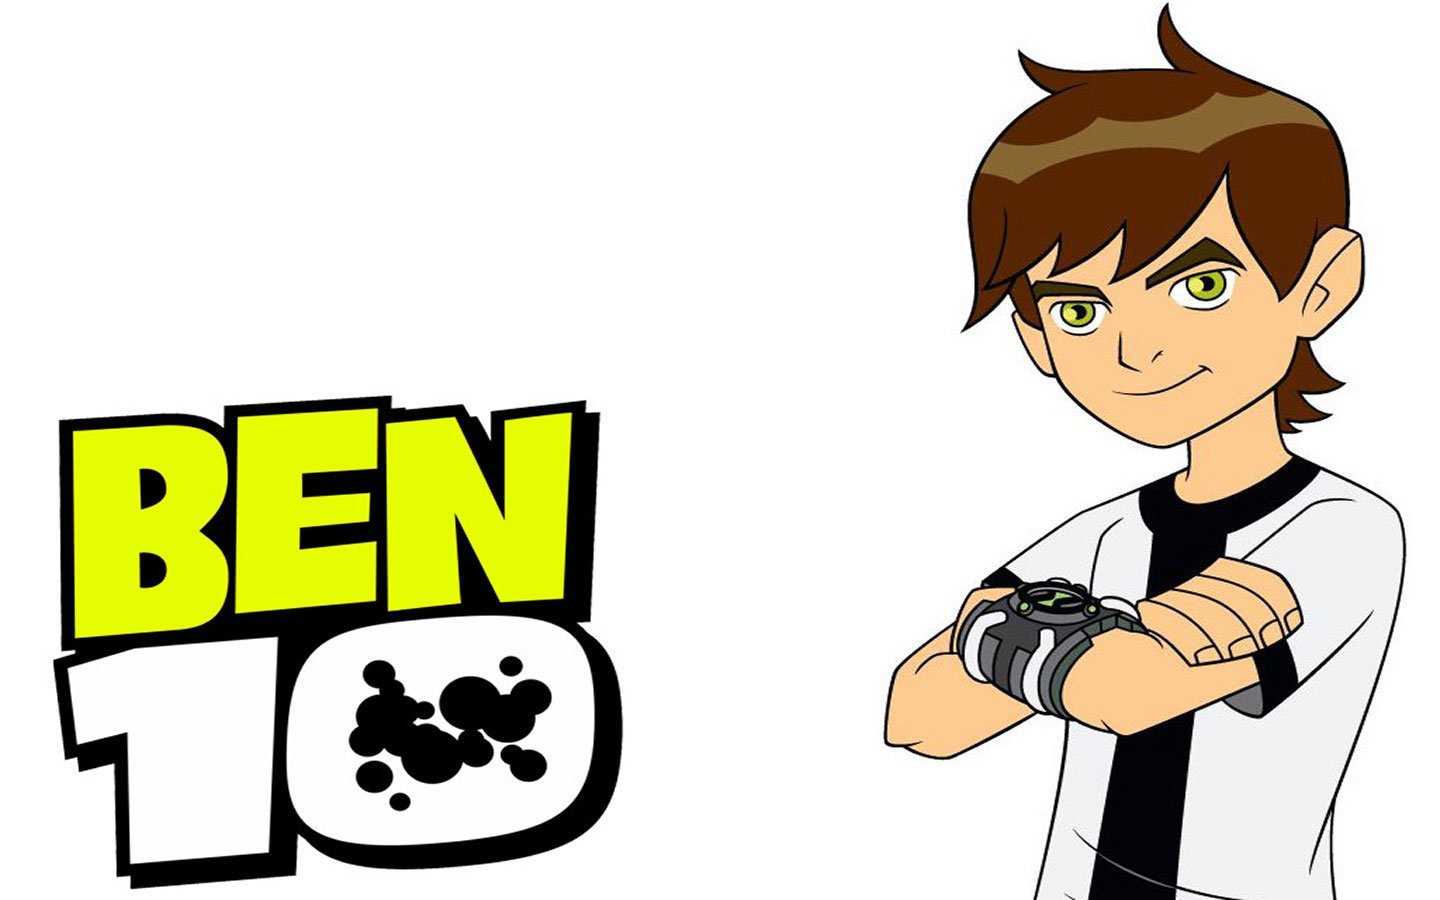 1440x900 16 Ben 10 Hd Wallpapers Background Images